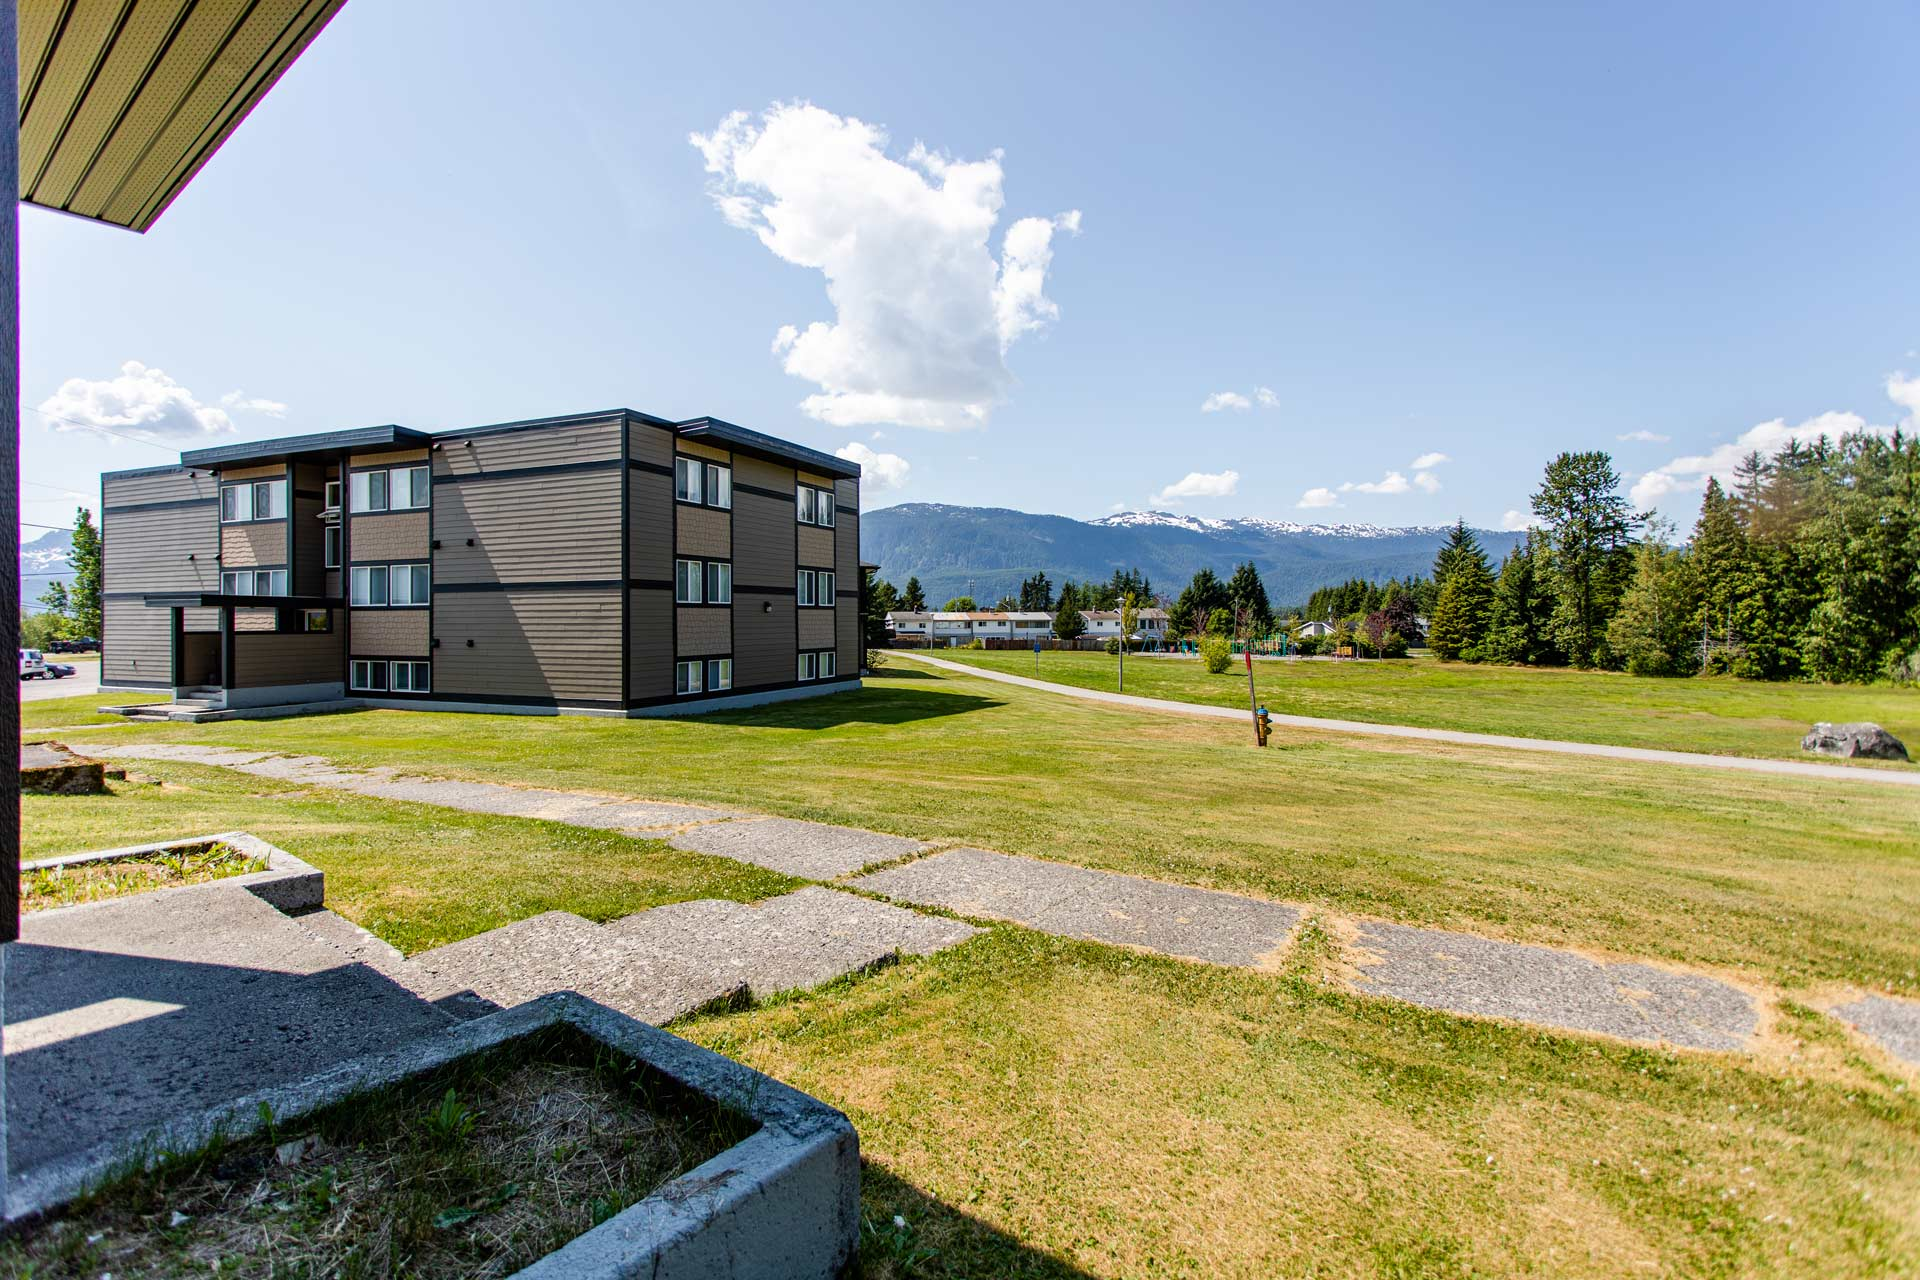 Green space around Hillcrest Place Apartments in Kitimat, B.C., with apartment building on the left.